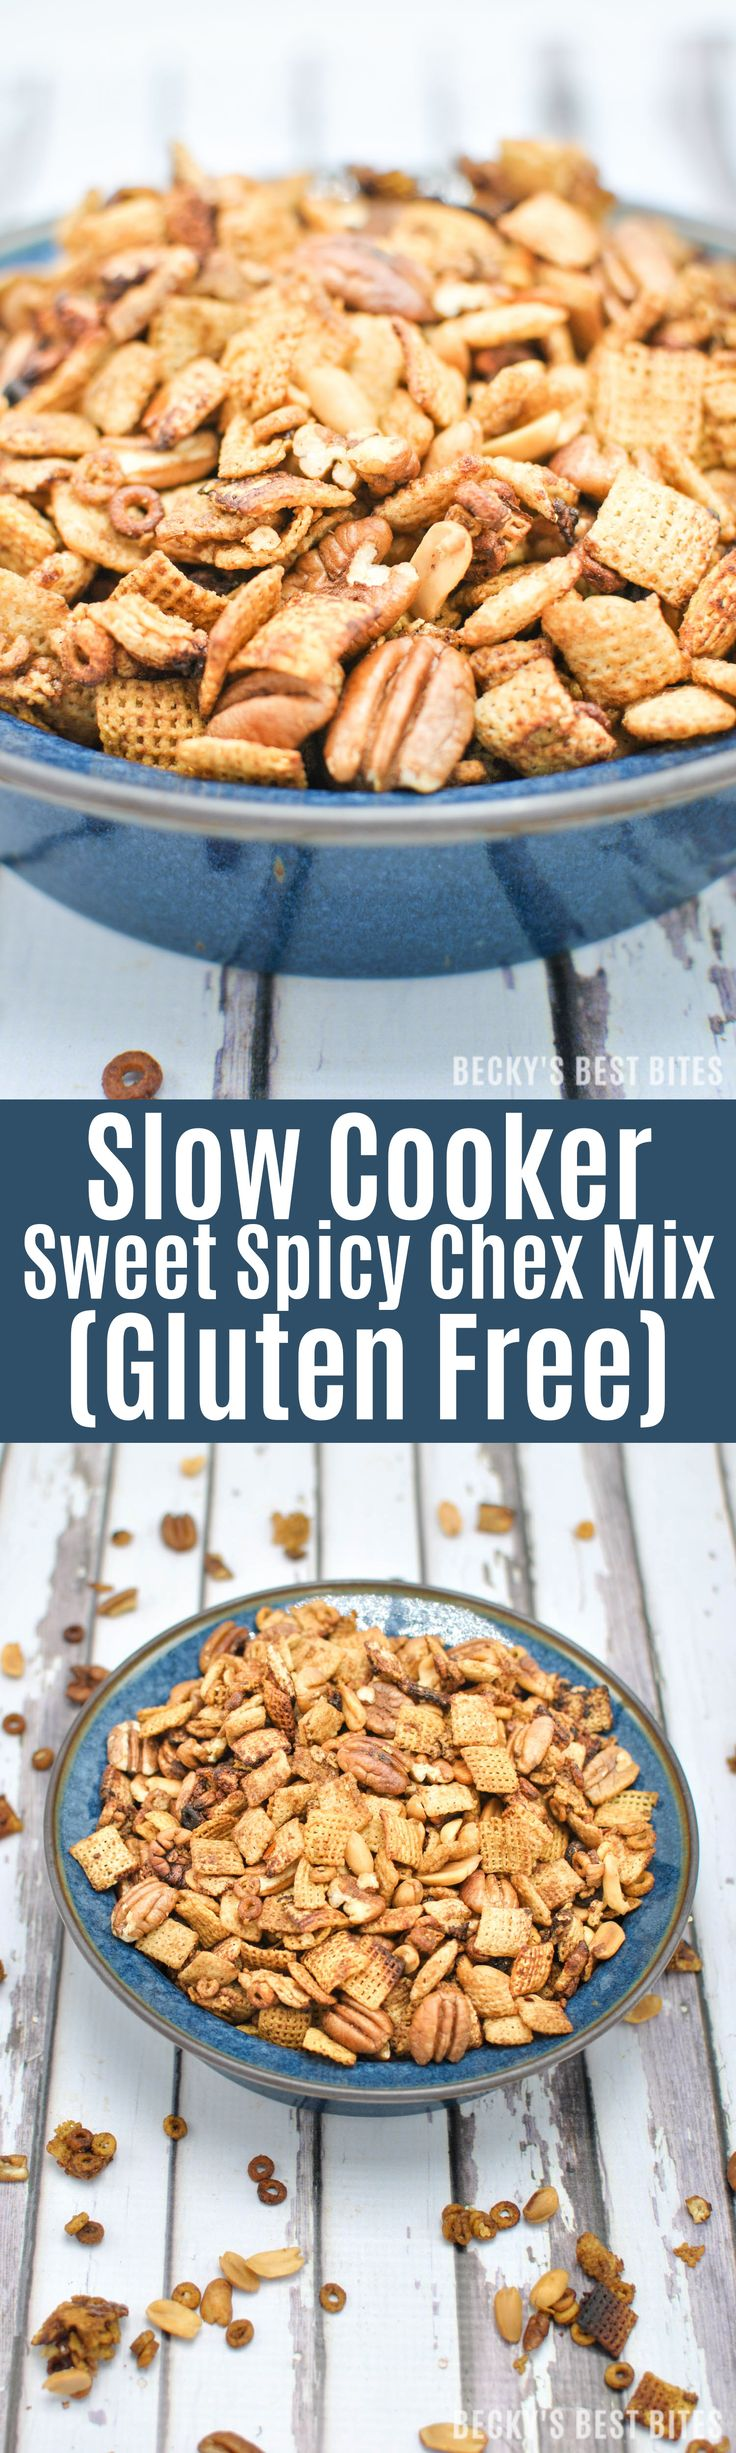 Slow Cooker Sweet Spicy Chex Mix Recipe (Gluten Free) is a healthier option for perfect the summertime snack. Learn about the variety and versatility of gluten free cereal at Publix and grab your coupon today! #GlutenFreeCereal #glutenfreecherrios #PublixGlutenFreeCereals #ad